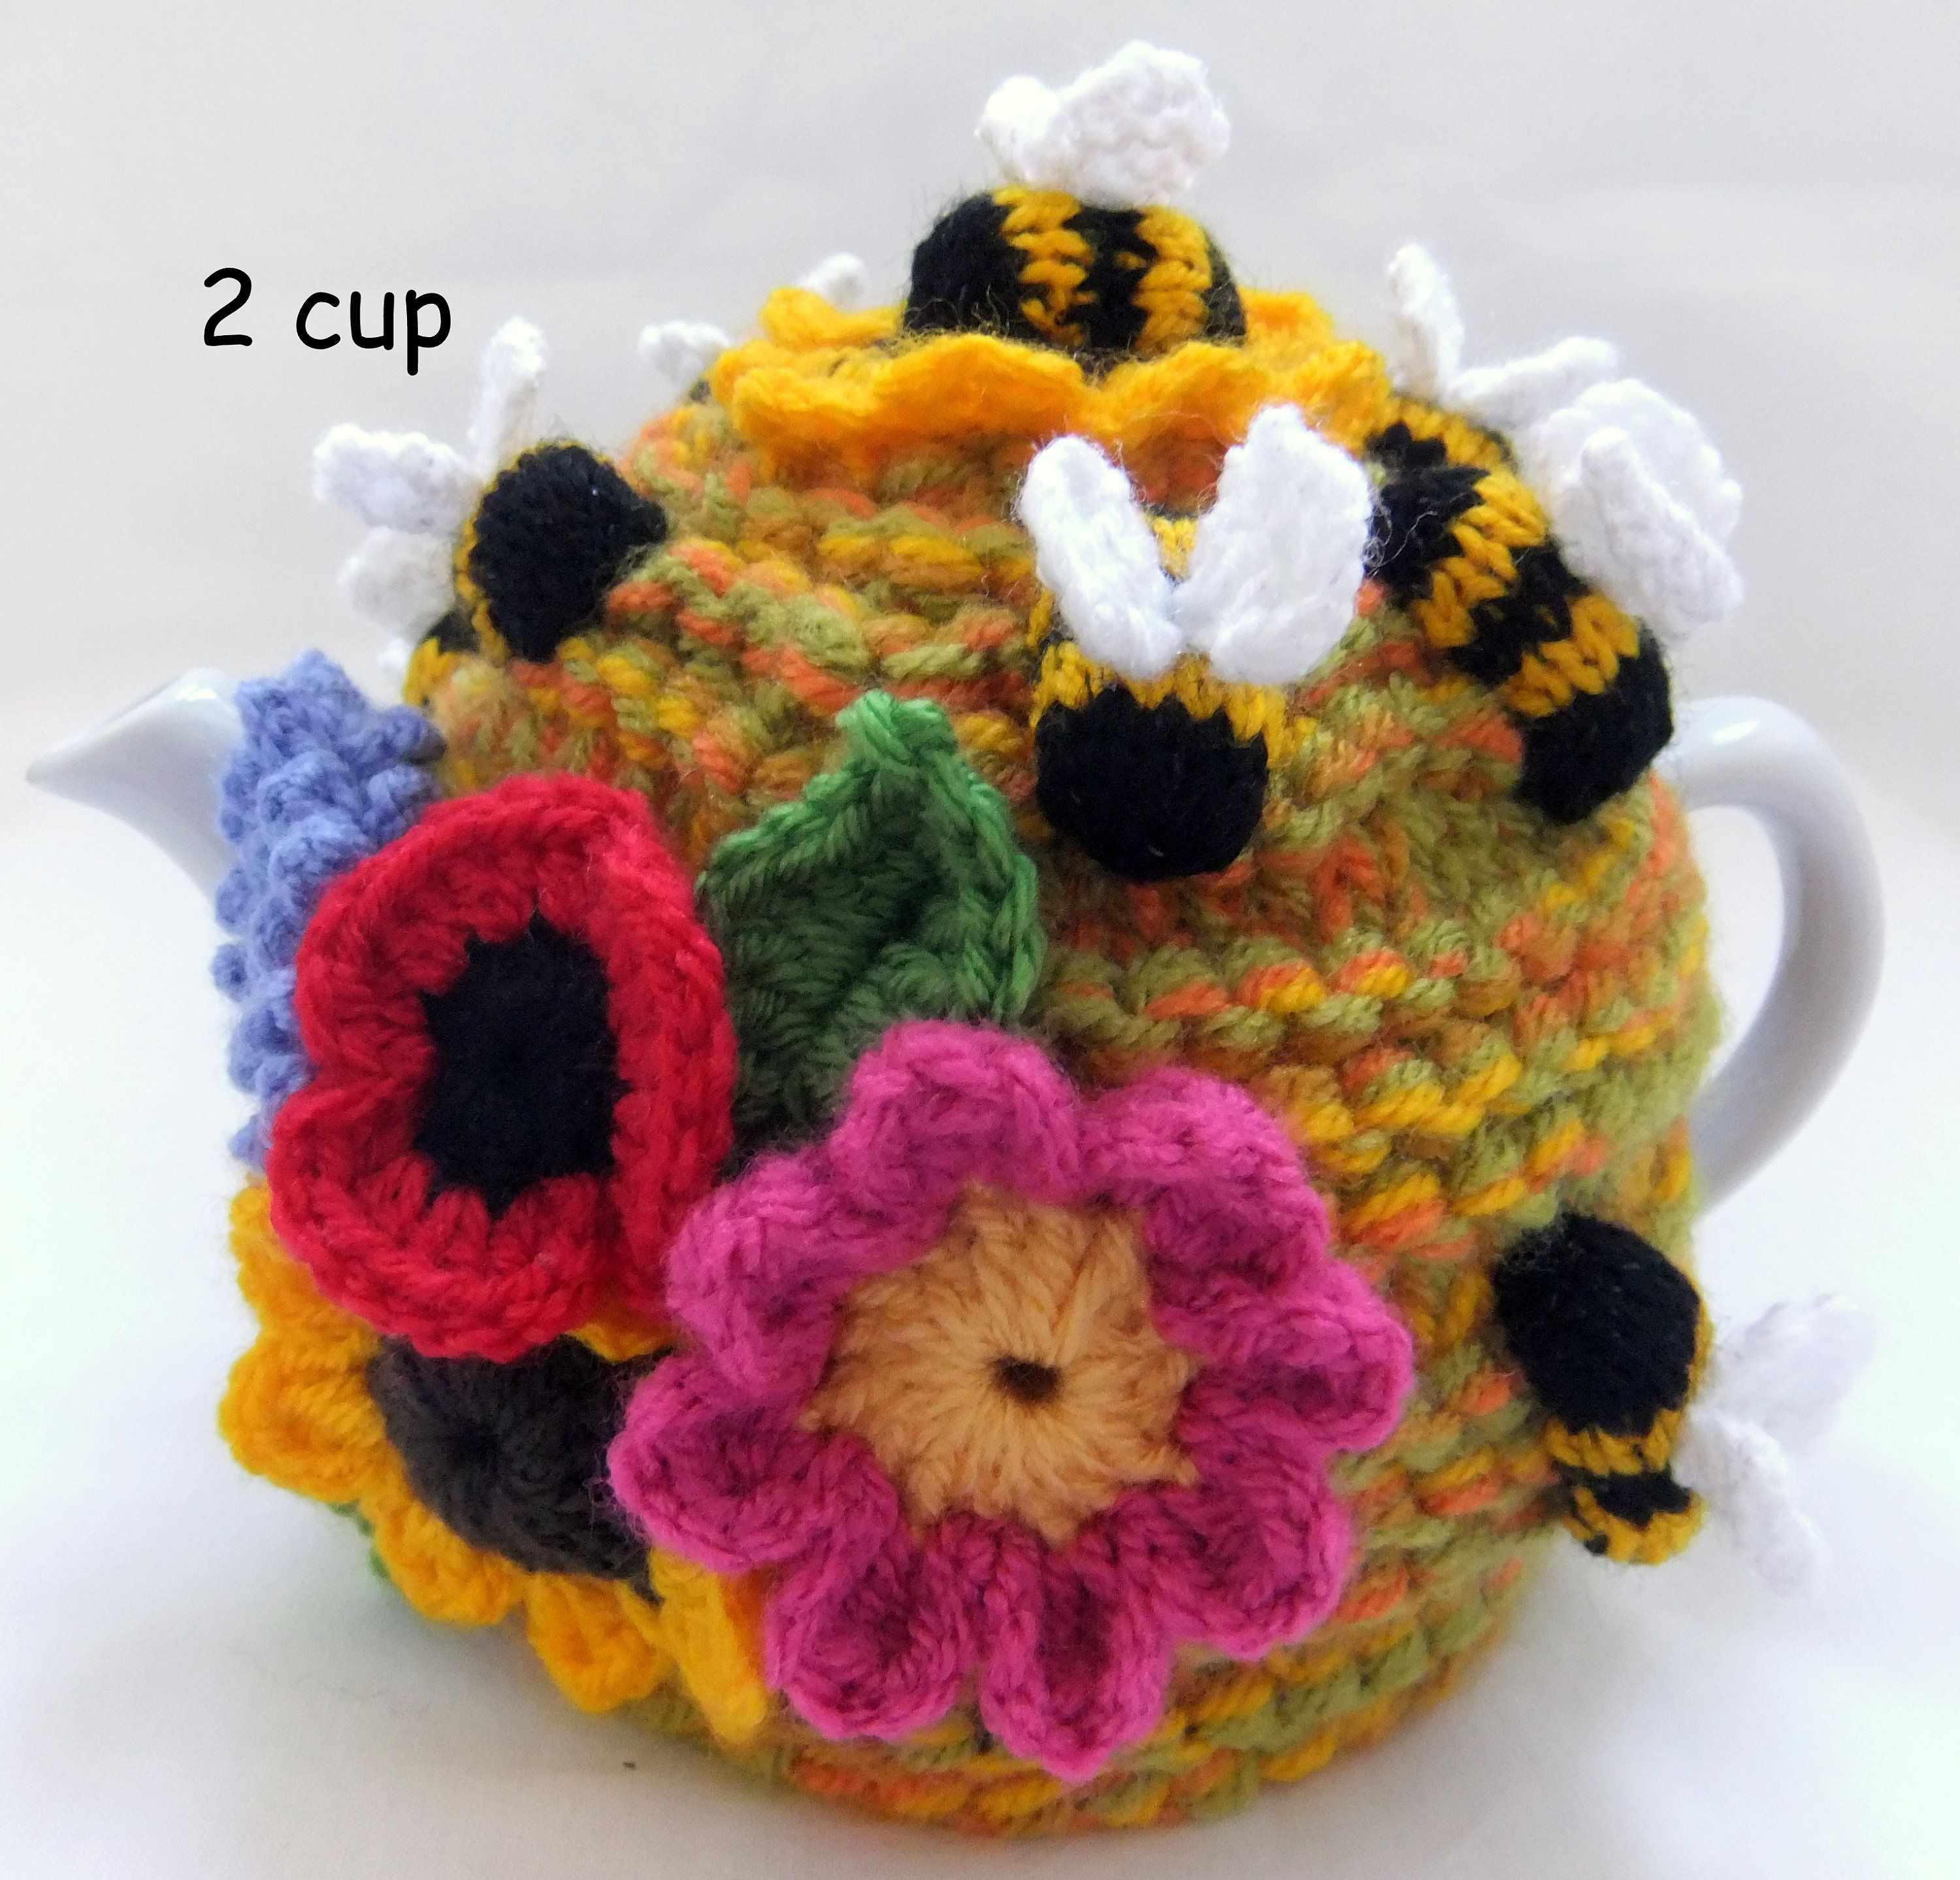 Hand Knitted /Crochet - Bee Hive - 2 cup floral tea cosy ...